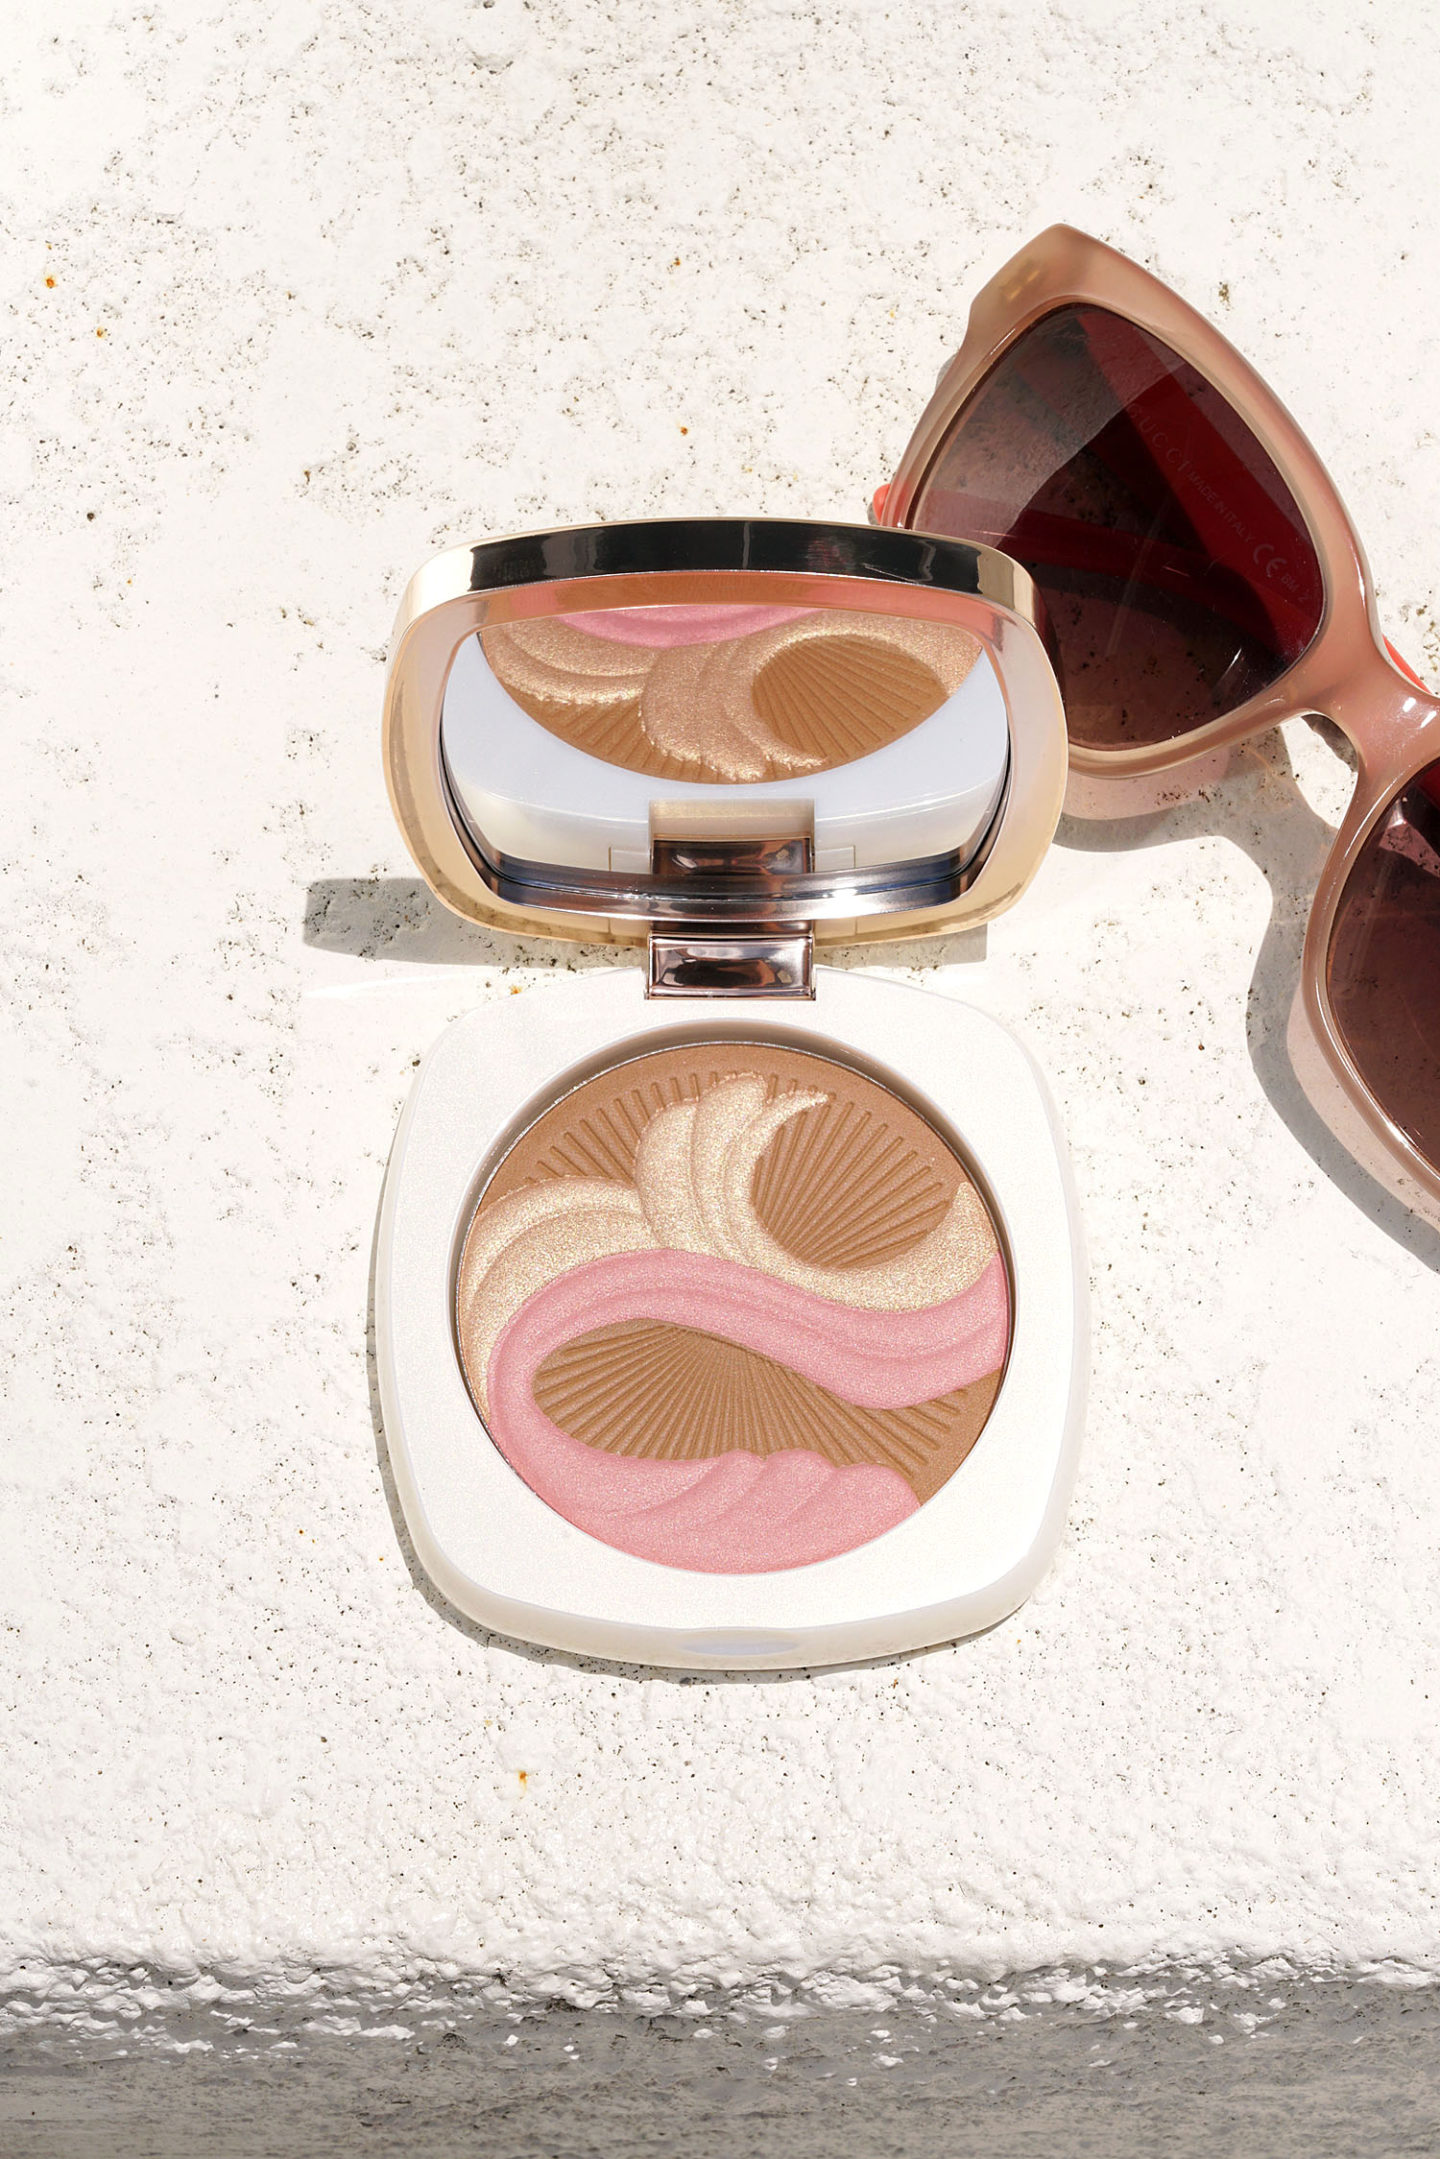 La Mer Bronzing Powder 2018 Review + Swatches via The Beauty Look Book